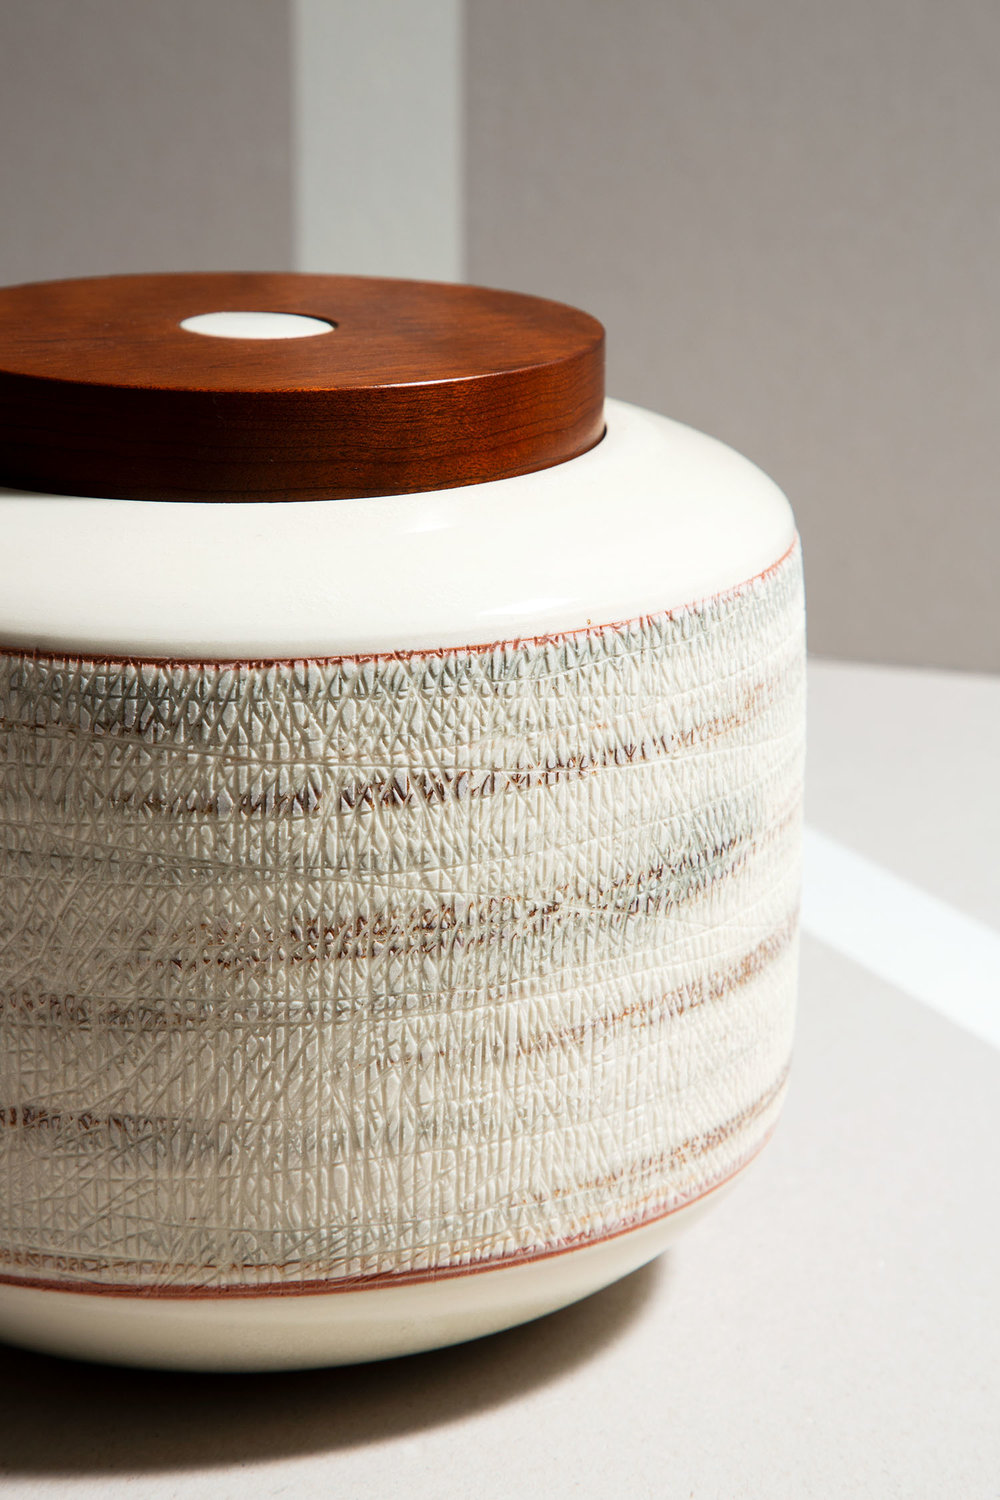 Porcelain box with wooden lid by Elizabeth Fonseca